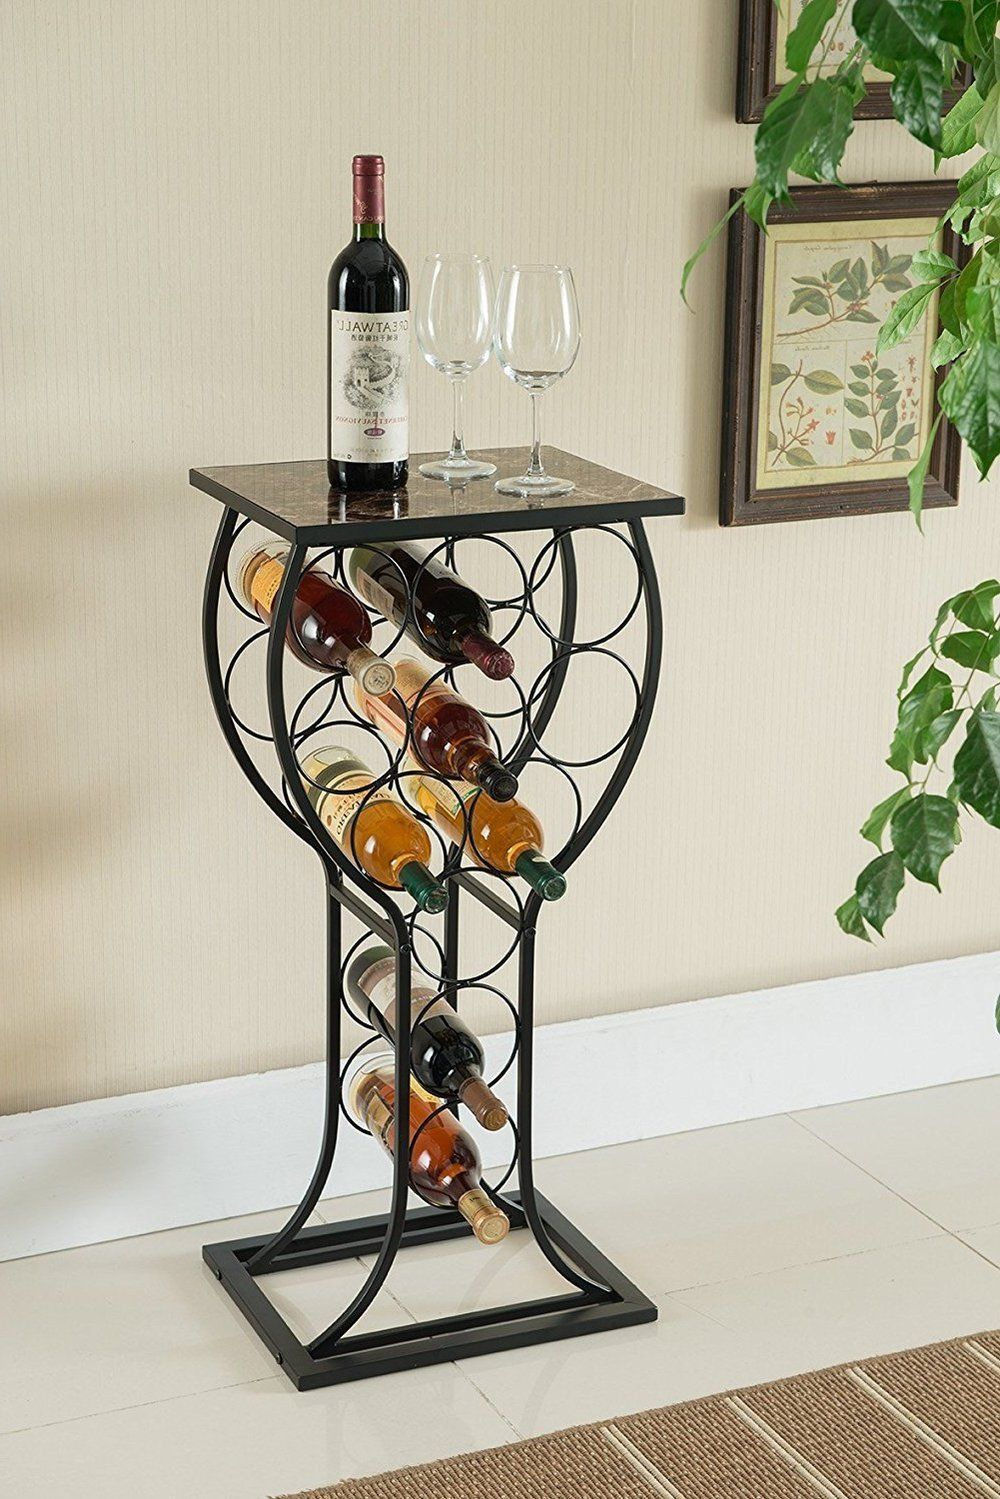 Primary image for Wine Bottle Storage Table bar metal display rack organize marble top glass shape